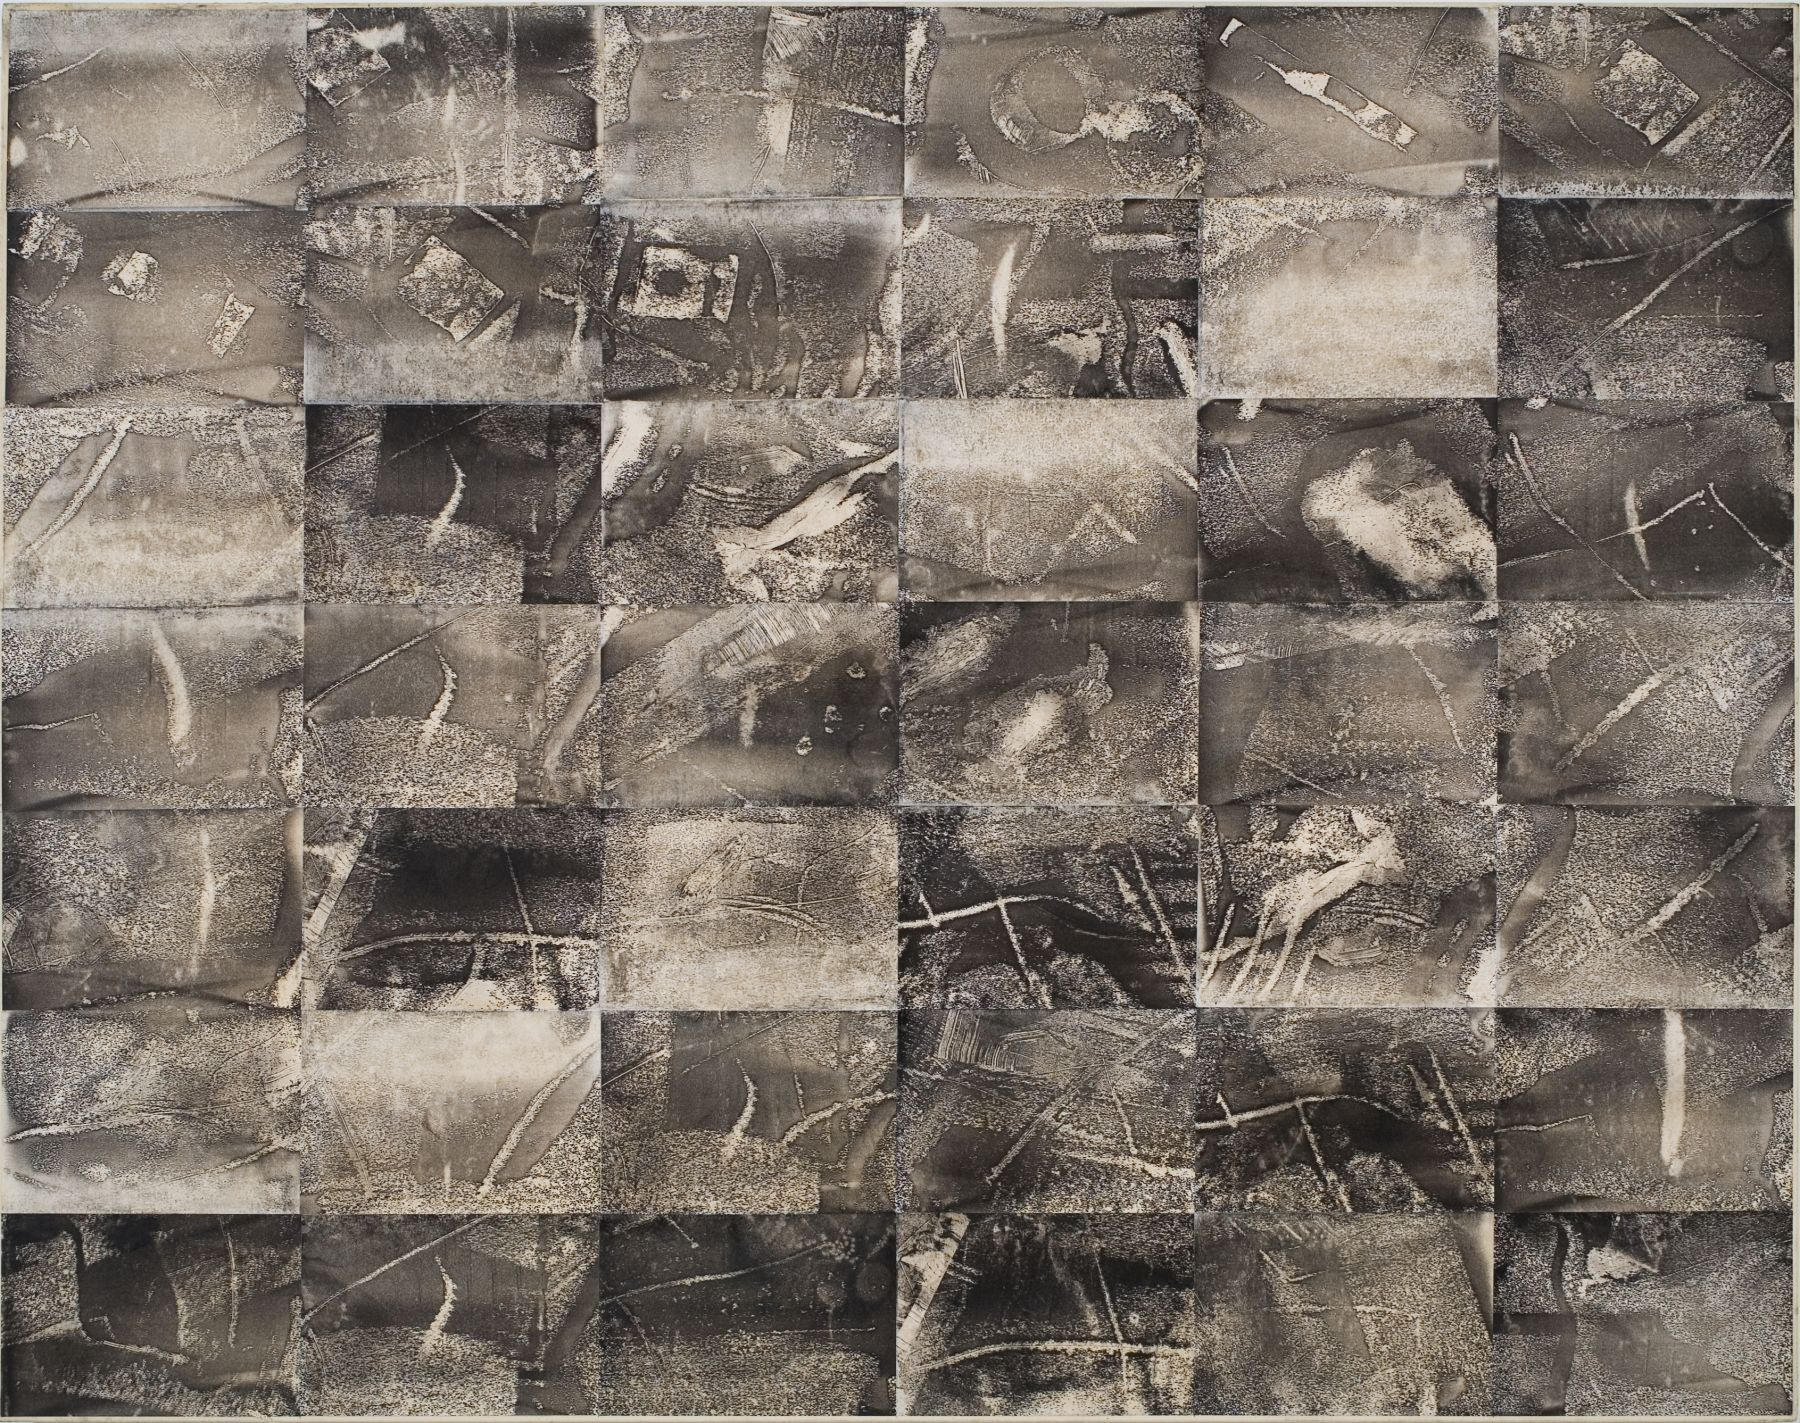 Jack Whitten, Xeroxed!, 1975